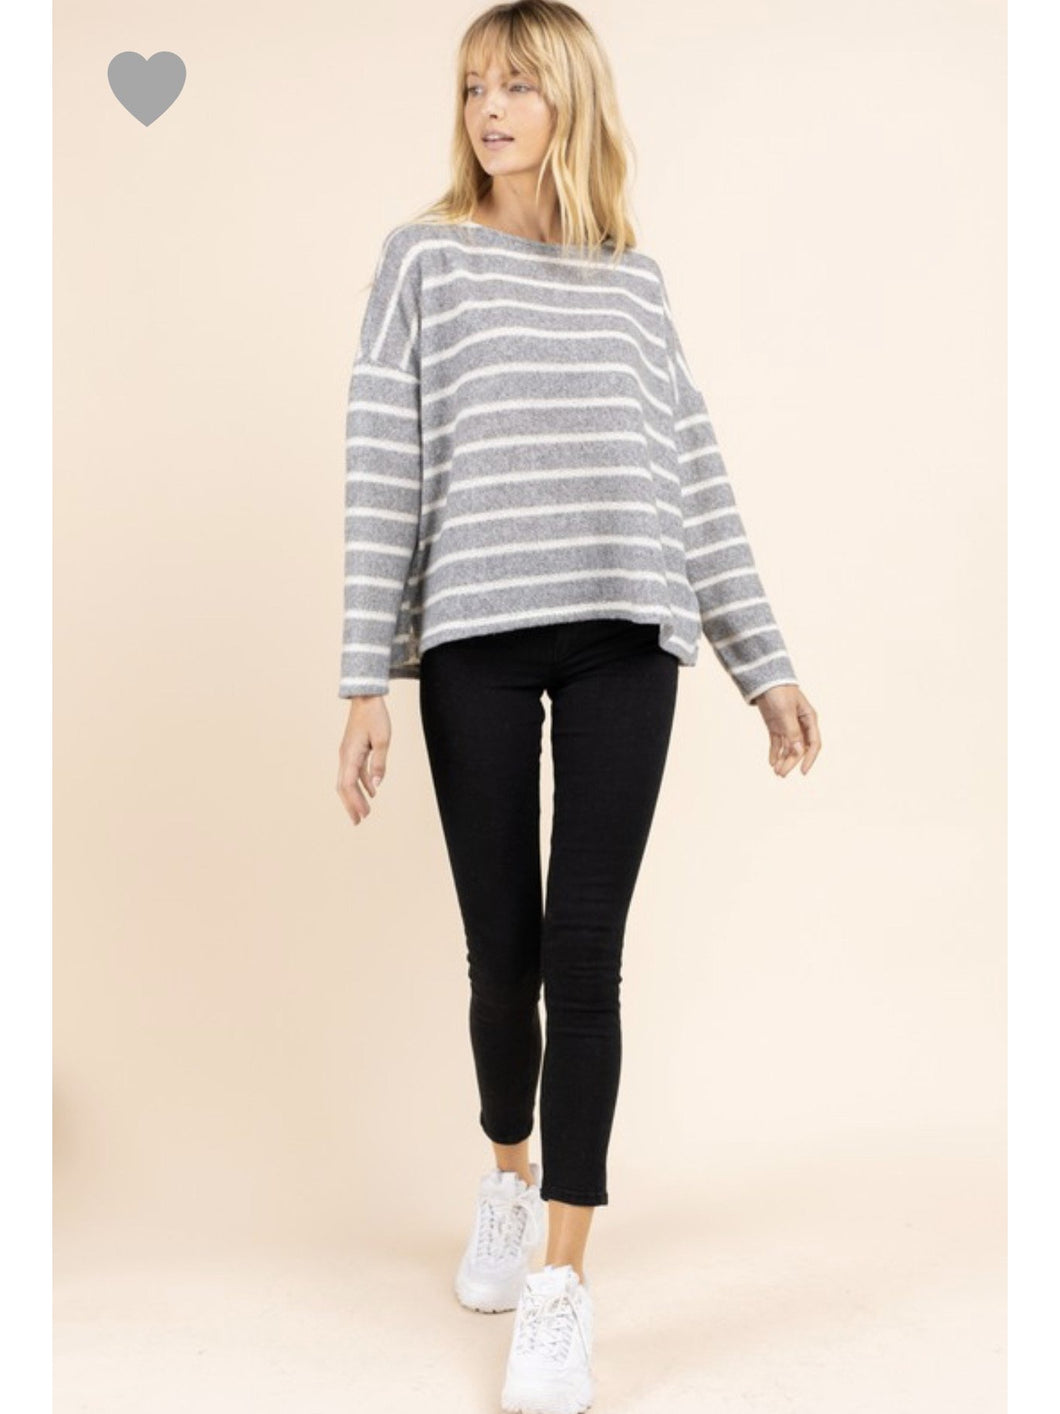 THE HAYLEY STRIPED SWEATER